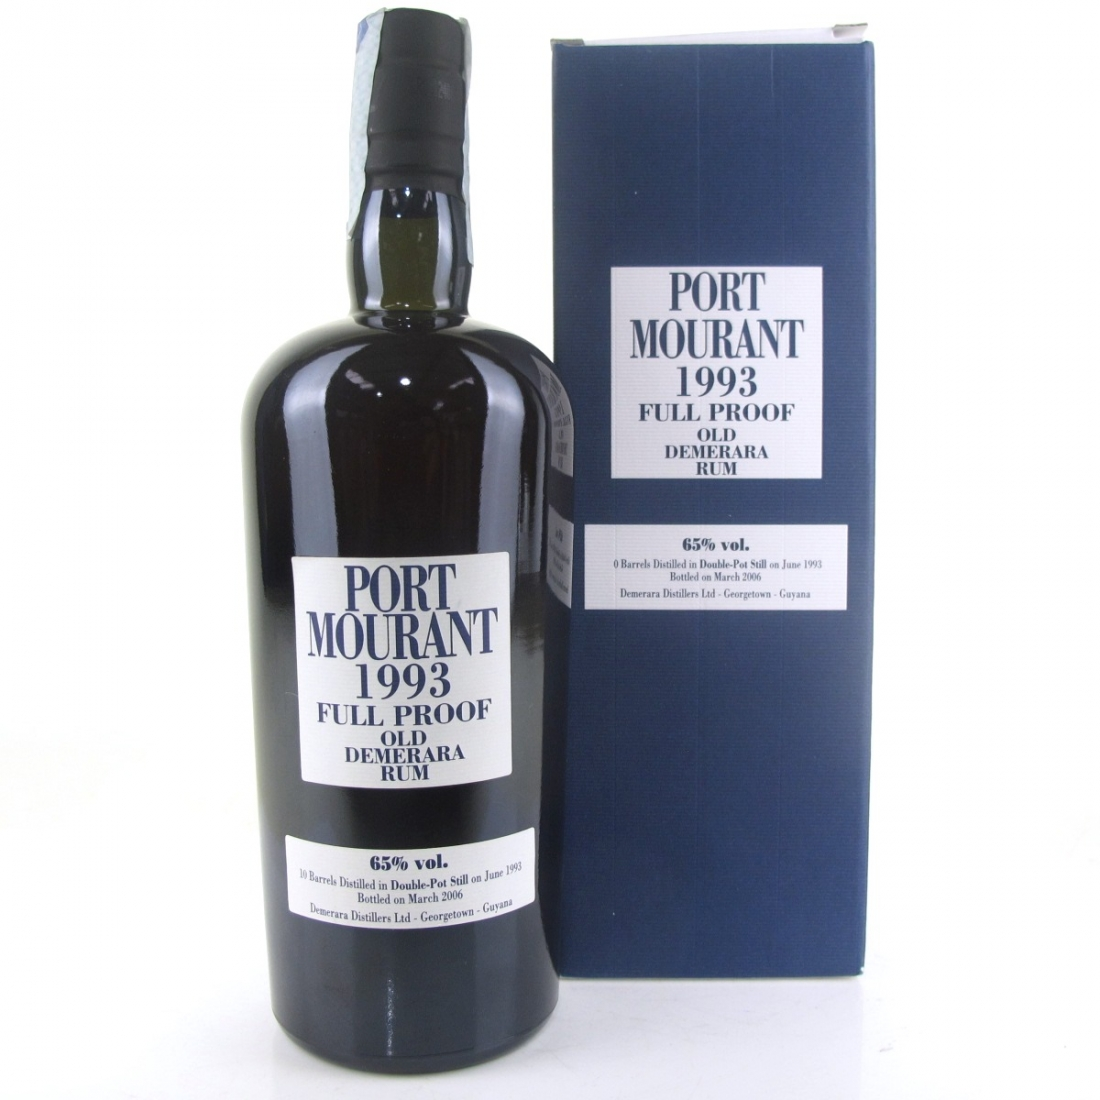 Port Mourant 1993 Full Proof Old Demerara Rum